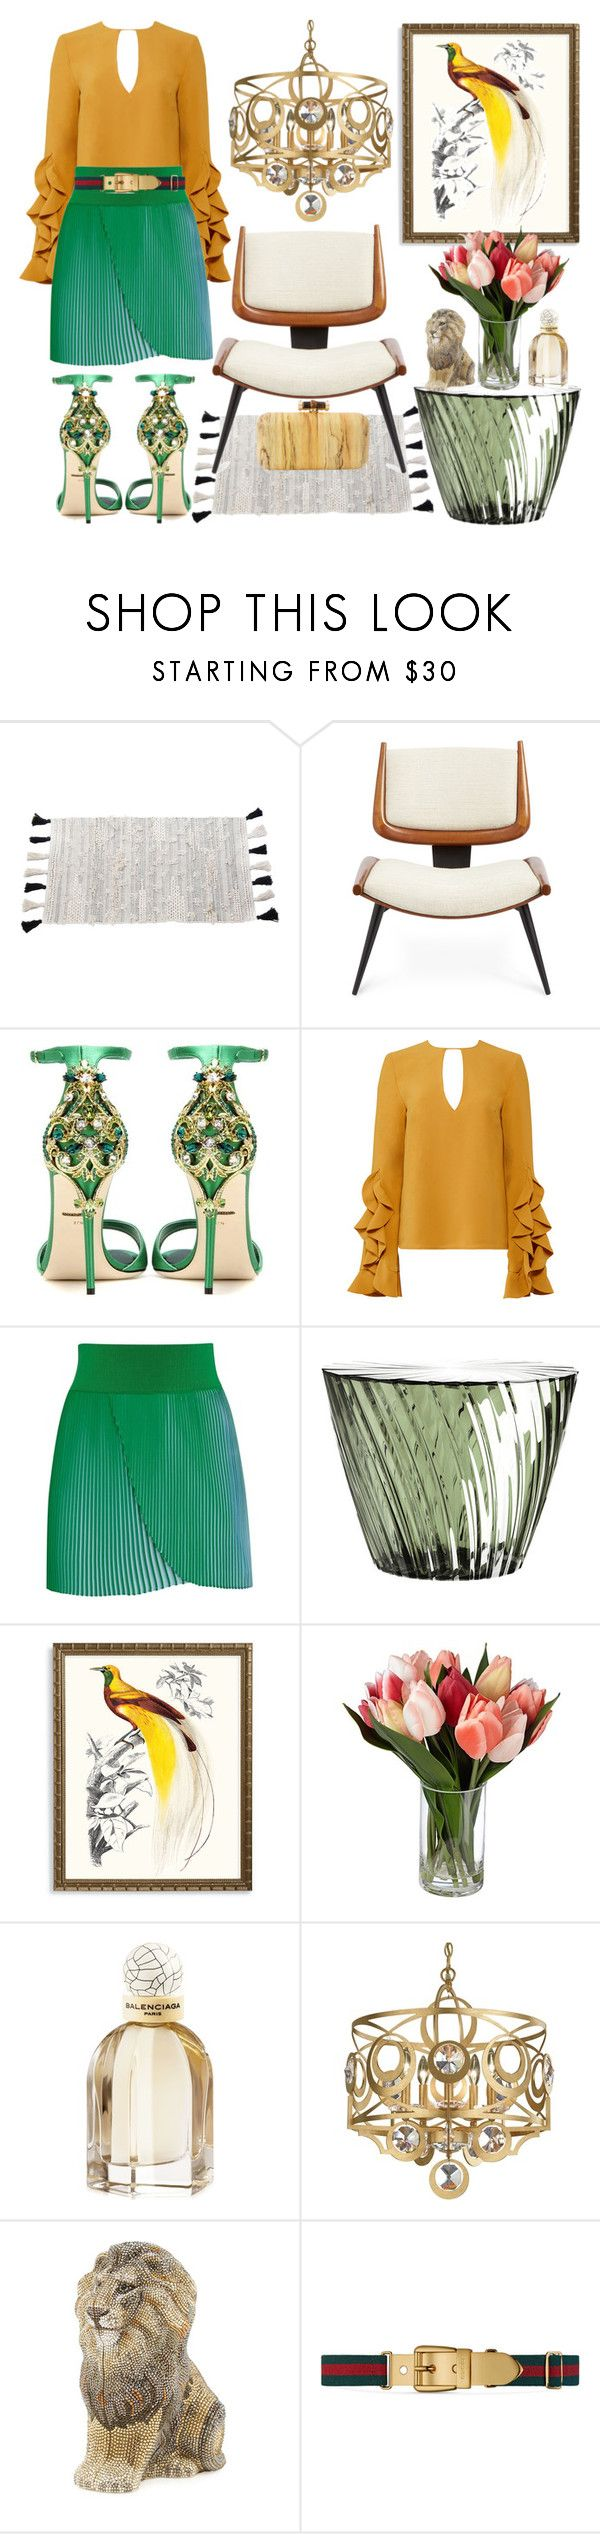 """Bird of Paradise"" by heybigtrender on Polyvore featuring Pom Pom at Home, Dolce&Gabbana, C/MEO COLLECTIVE, STELLA McCARTNEY, Kartell, Frontgate, Balenciaga, Schonbek, Judith Leiber and Gucci"